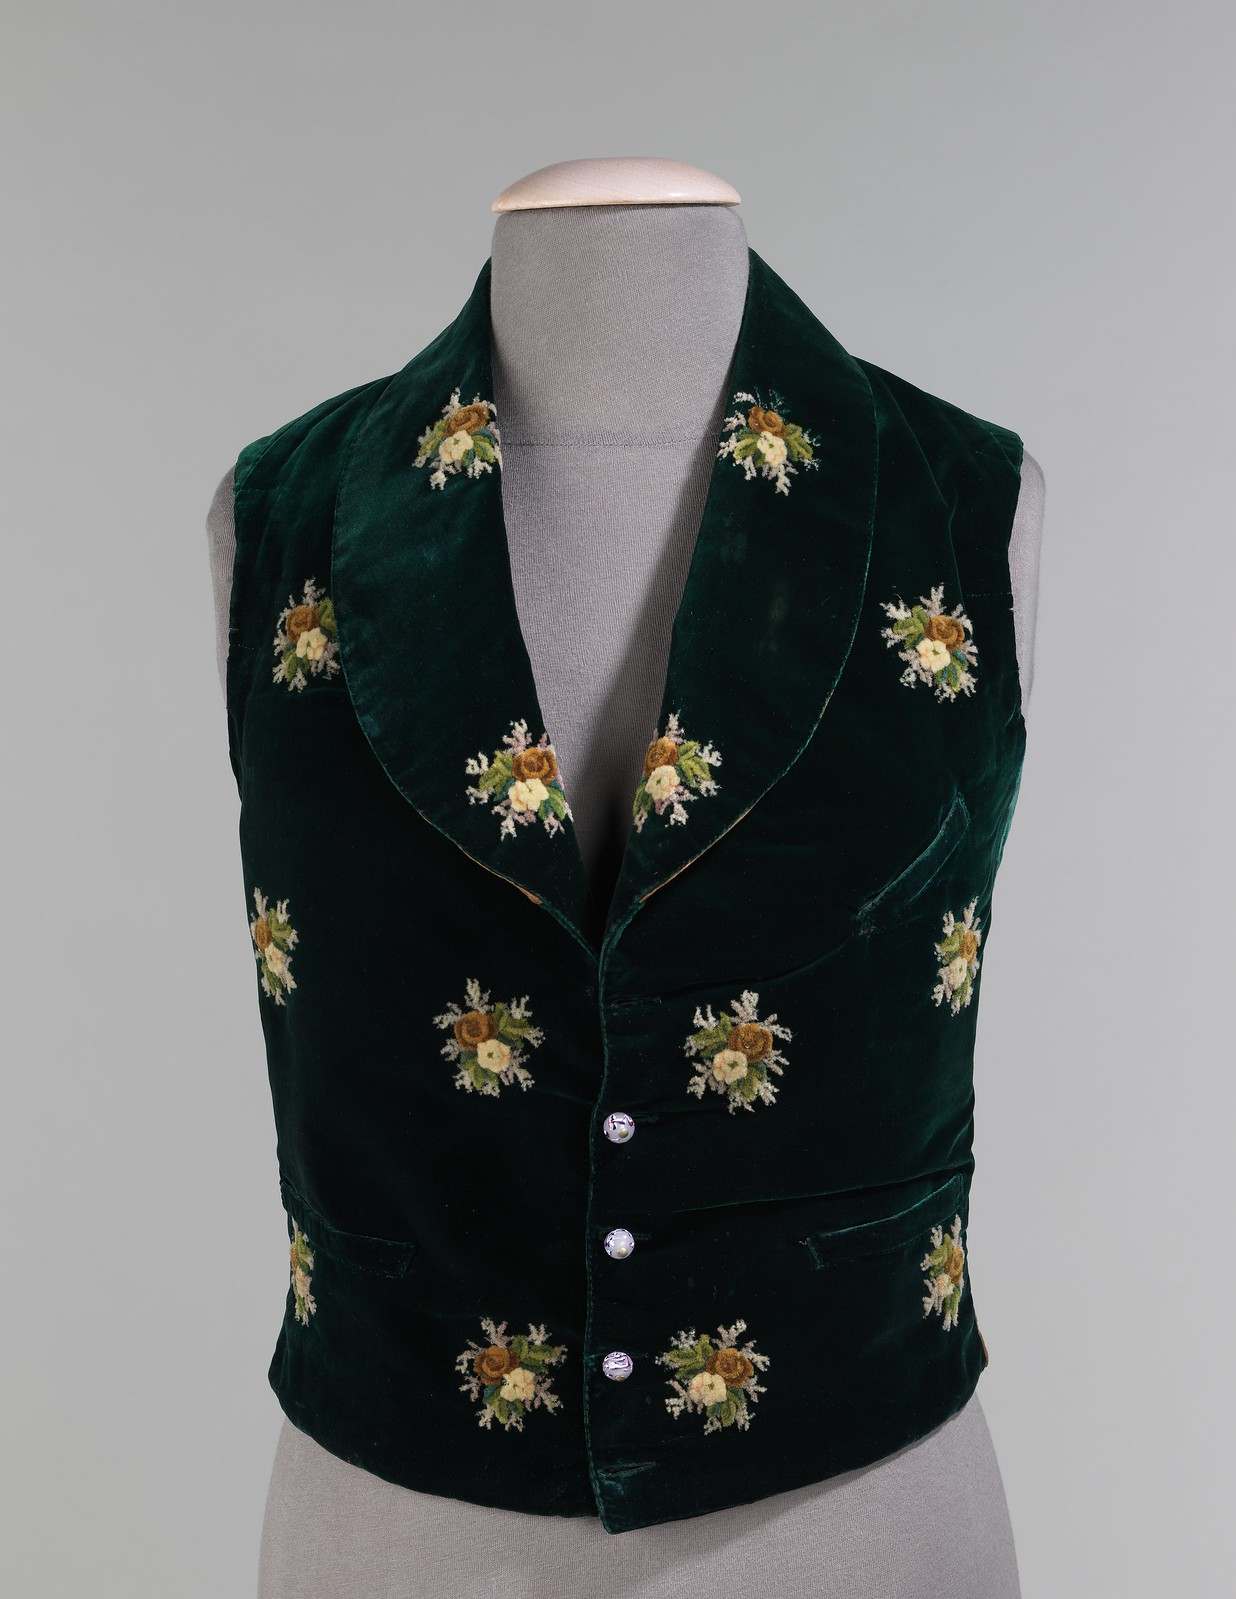 1838. American. Silk, cotton, wool, leather, glass. metmuseum